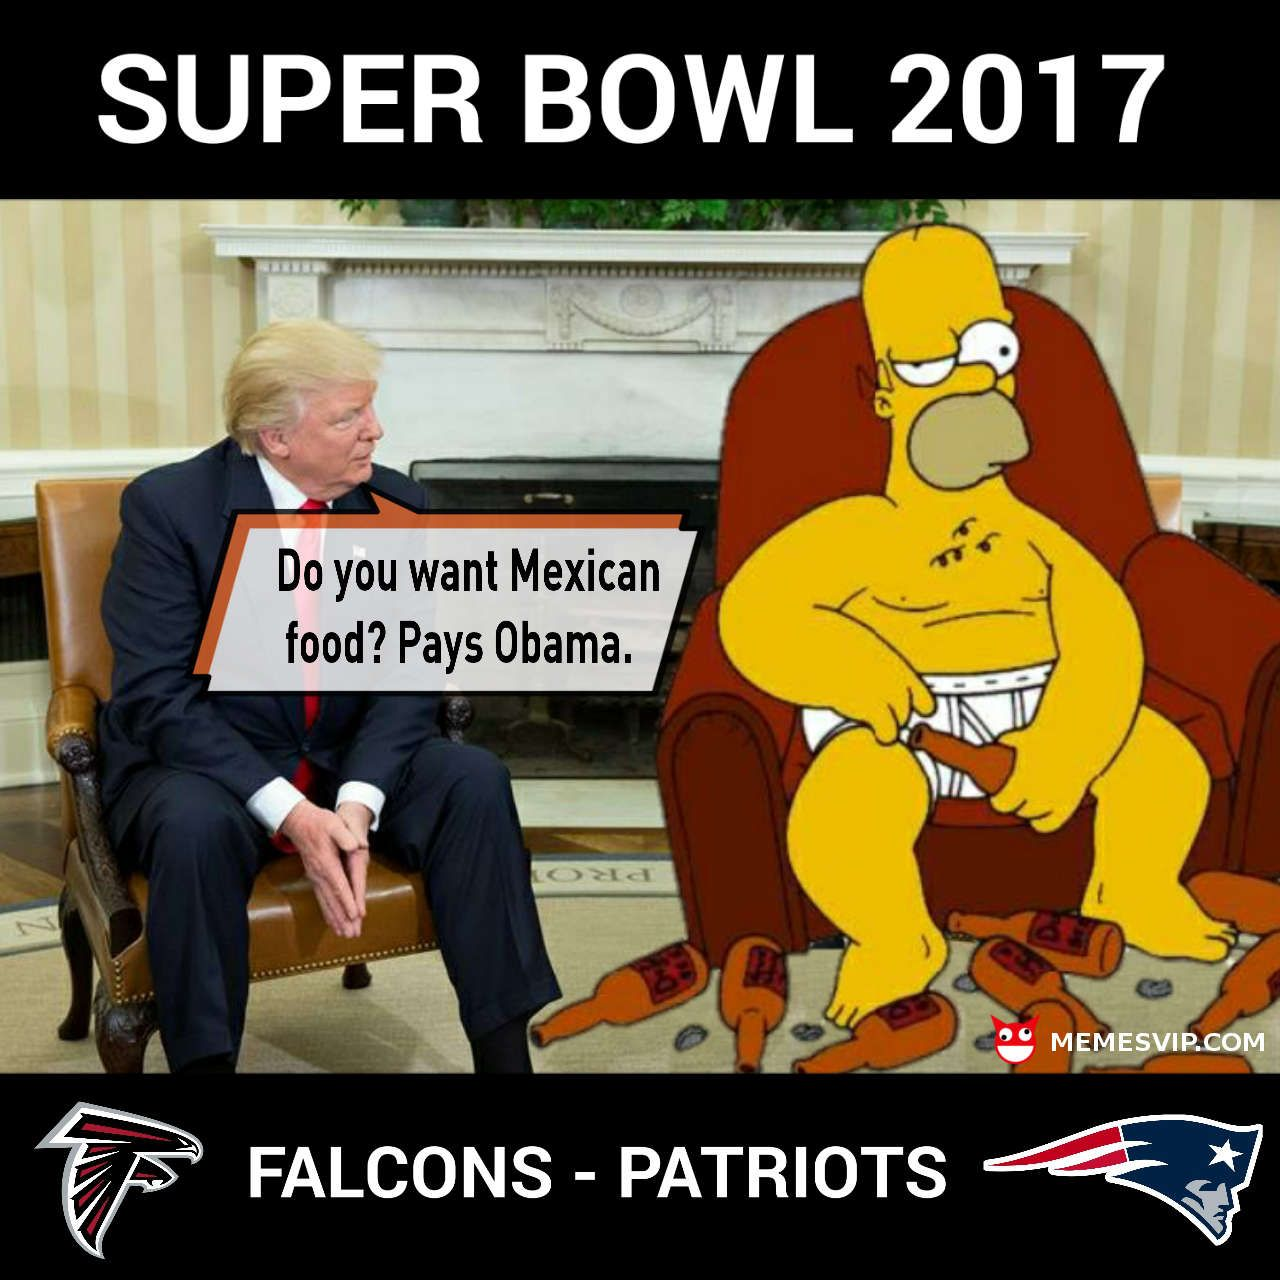 Super Bowl Party Decorations Uk: Super Bowl Meme